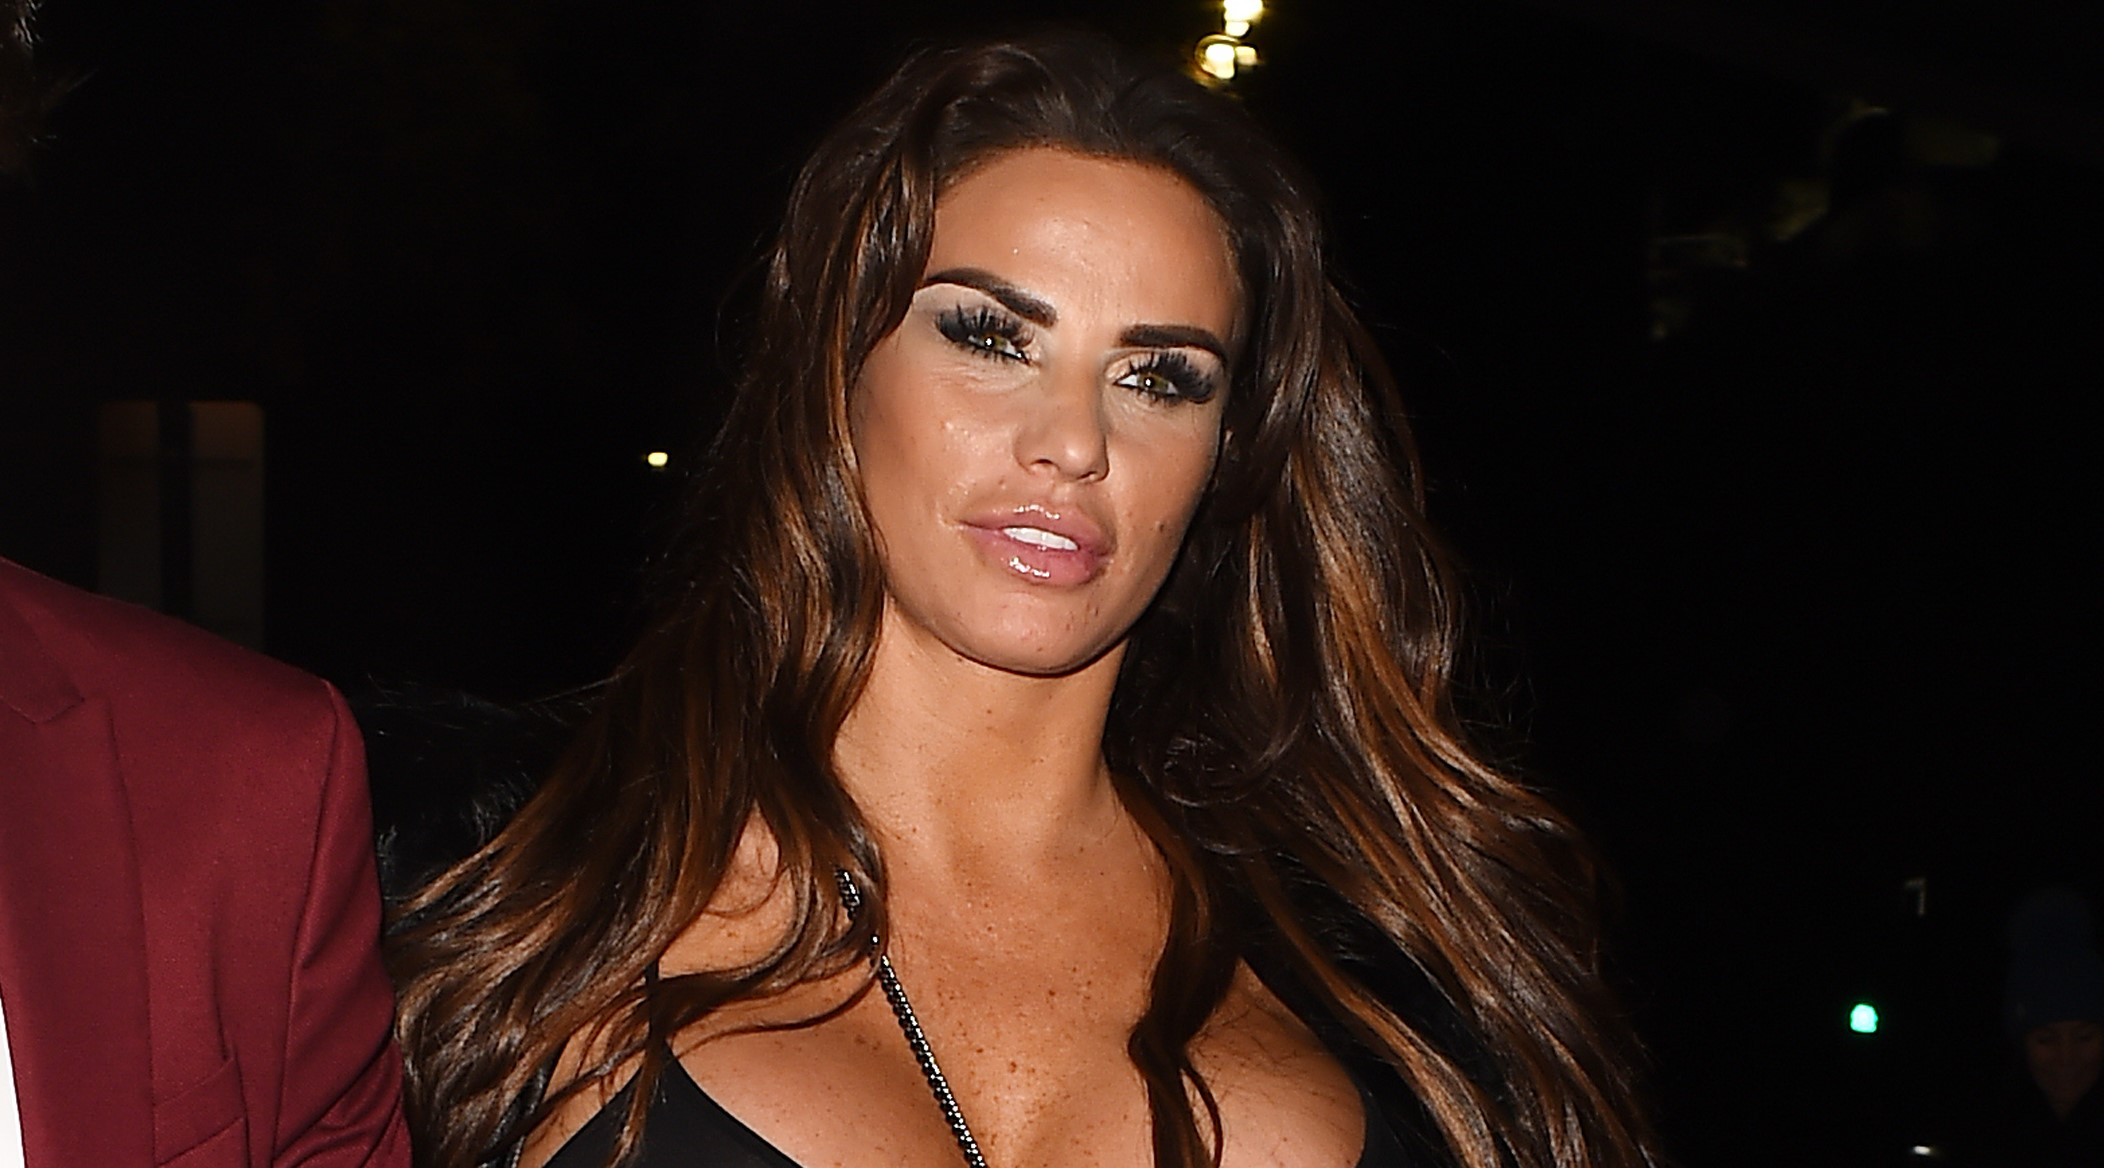 Katie Price 'pulled over by police AGAIN a week after driving ban was lifted'